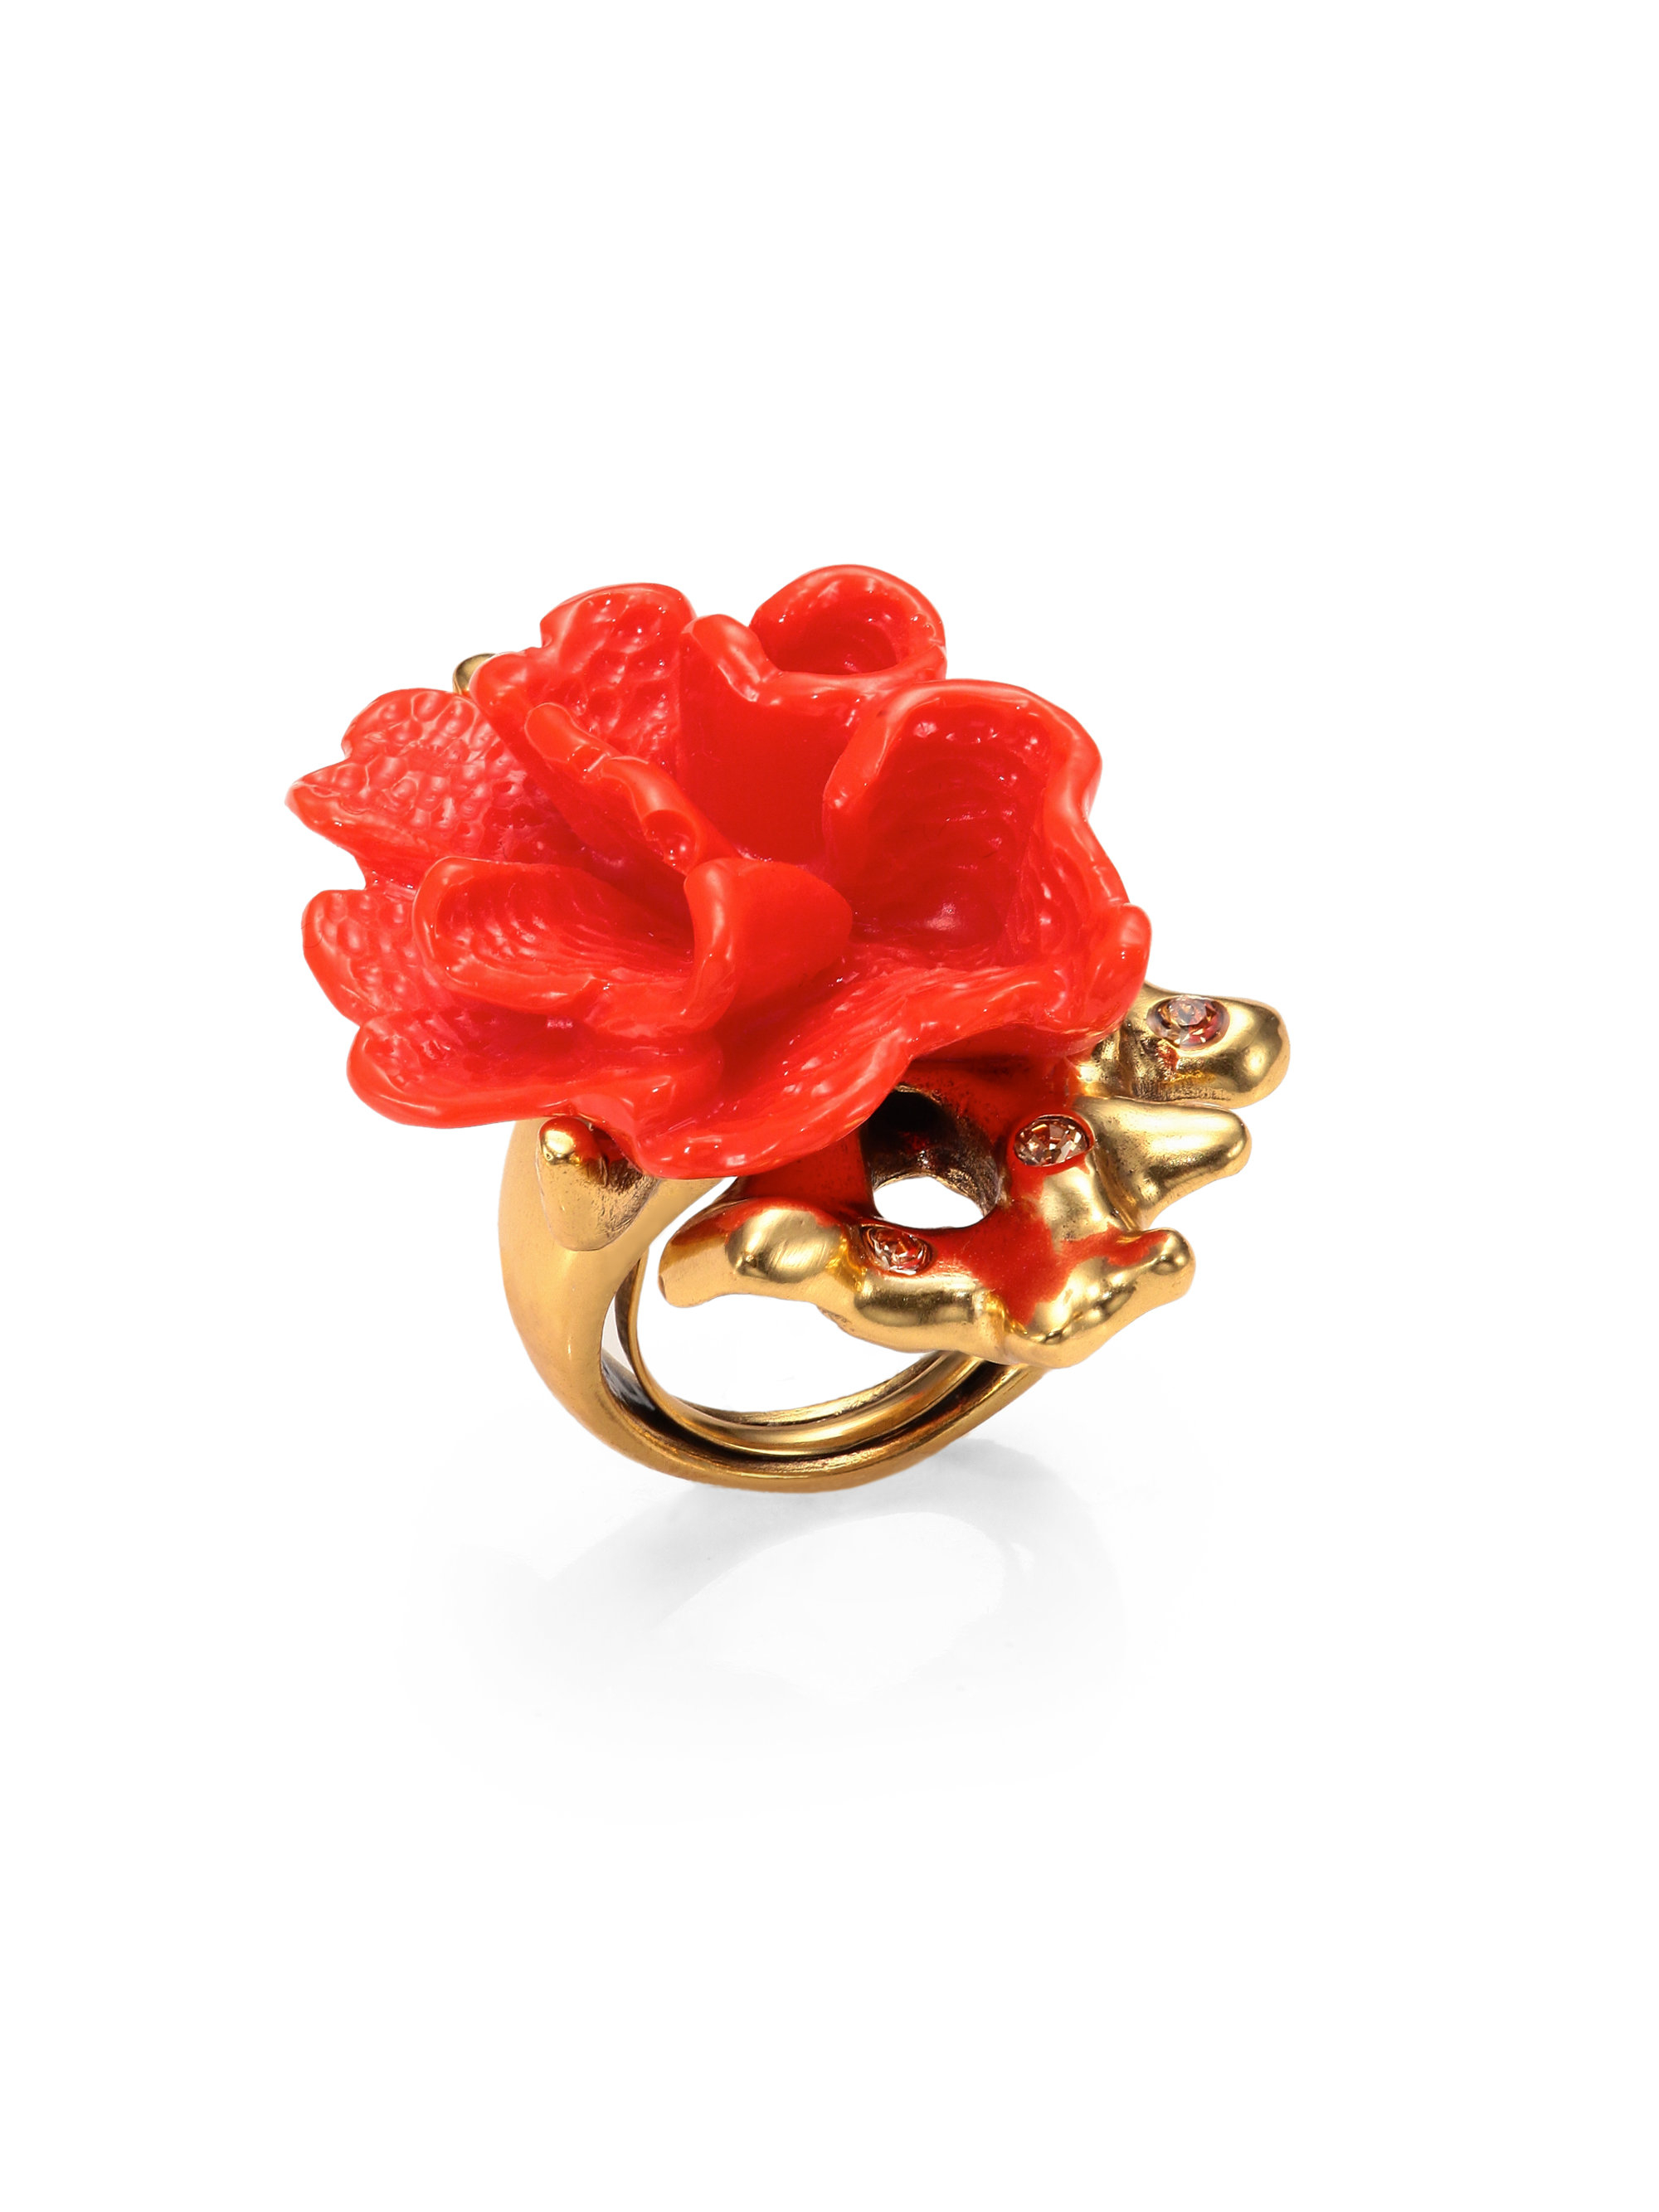 christina rings handcrafted ring coral diamond shop jewelry jervey